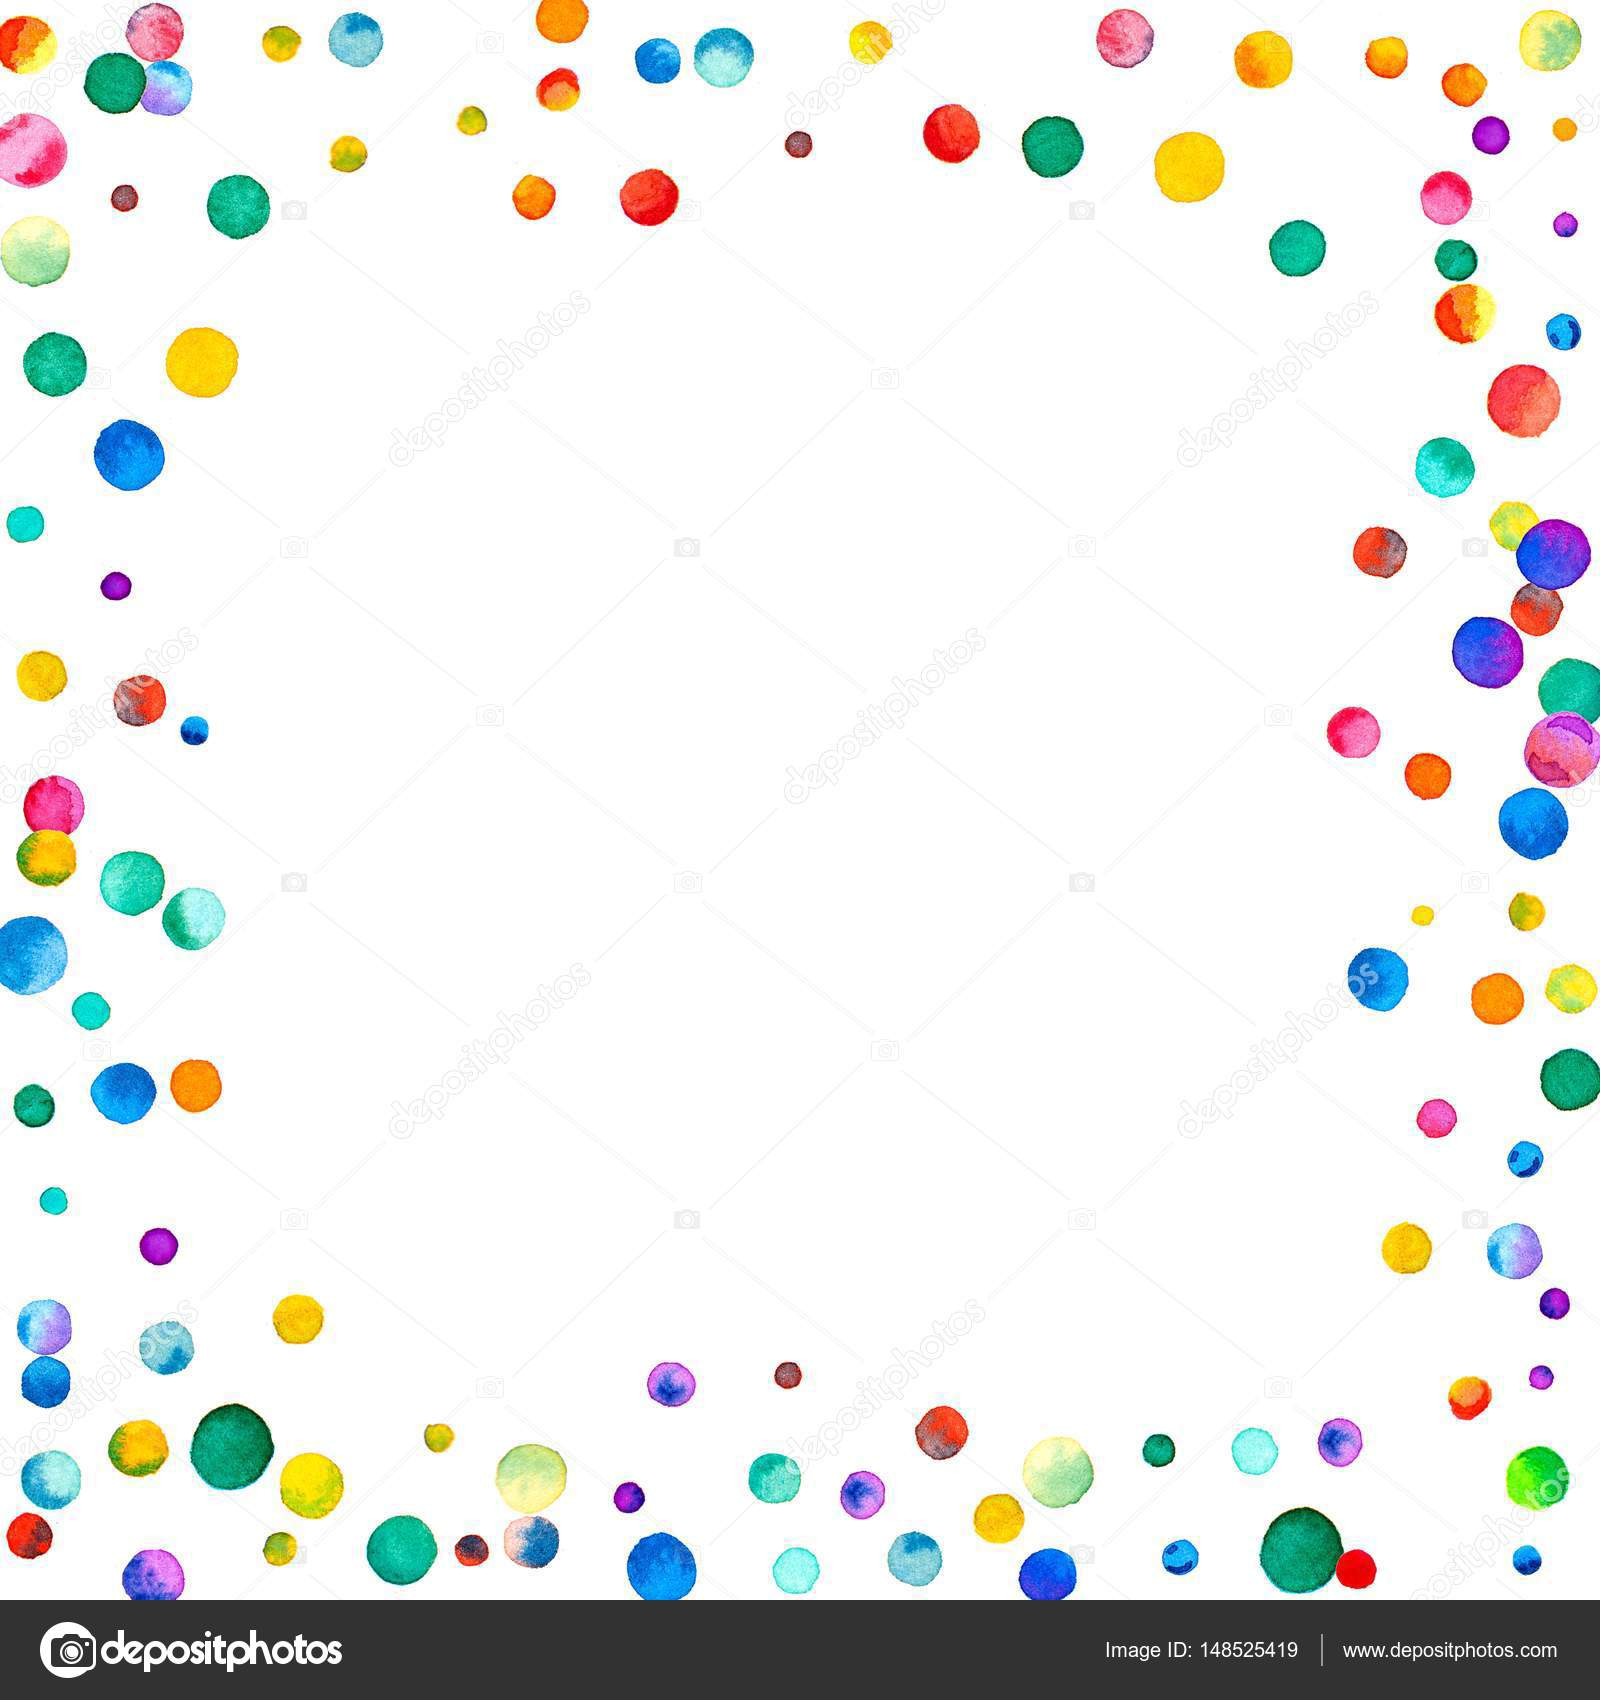 White Backgrounds With Colorful Borders Sparse watercol...